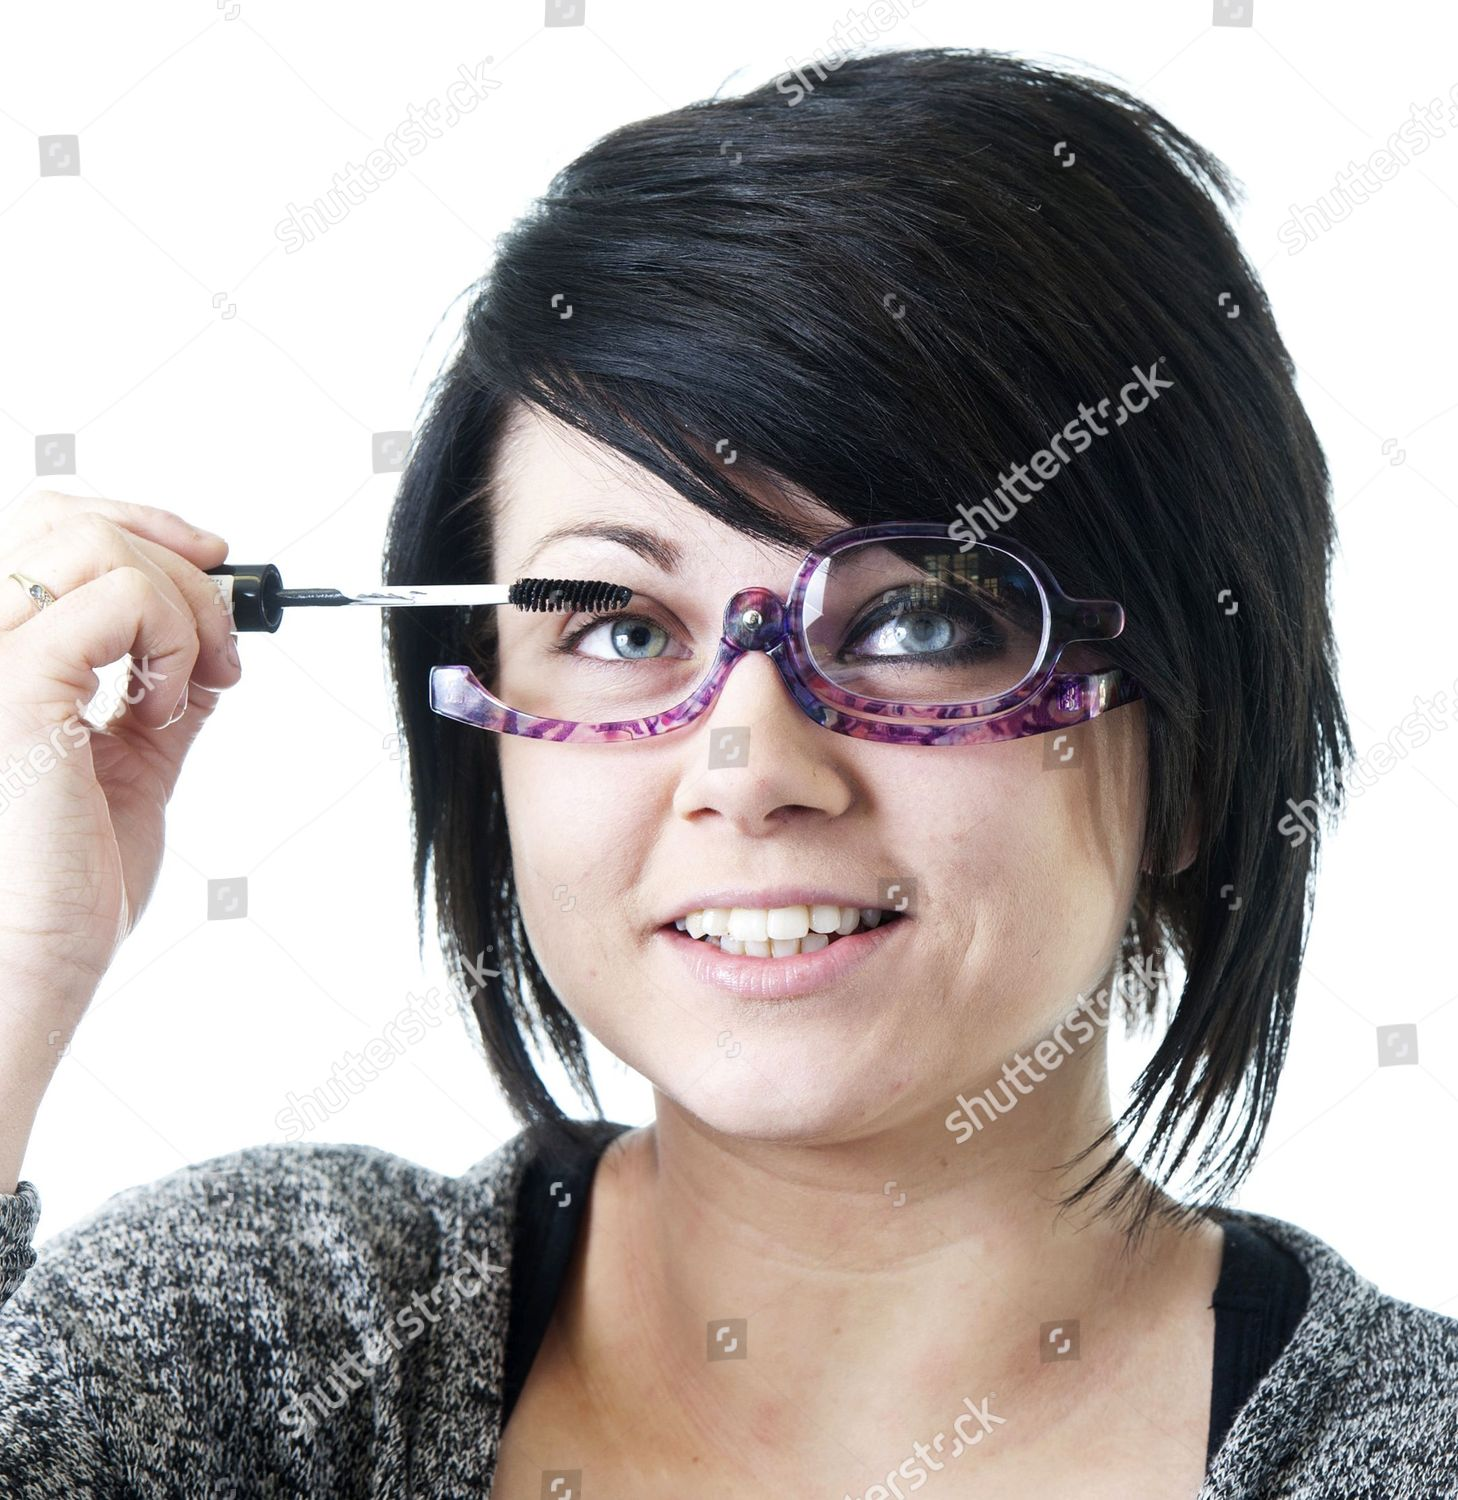 Look - How to mascara apply while wearing glasses video